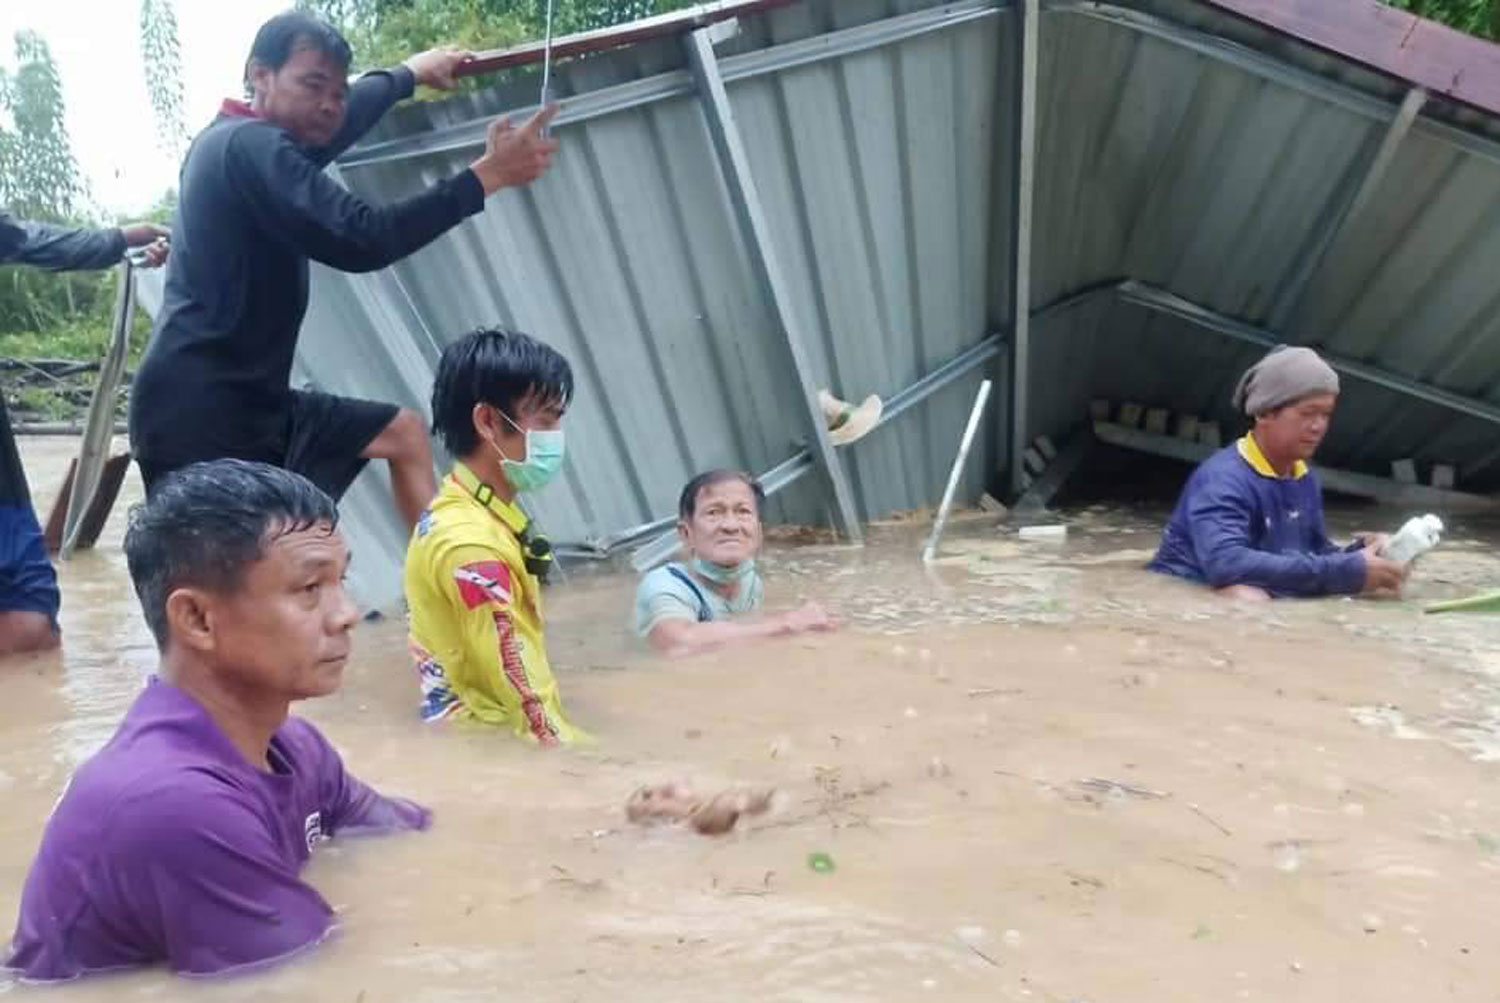 Rescuers work to free the trapped elderly man from the wreckage of his collapsed kitchen, in the Yom River on Thursday morning.  (Photo: Chinnawat Singha)